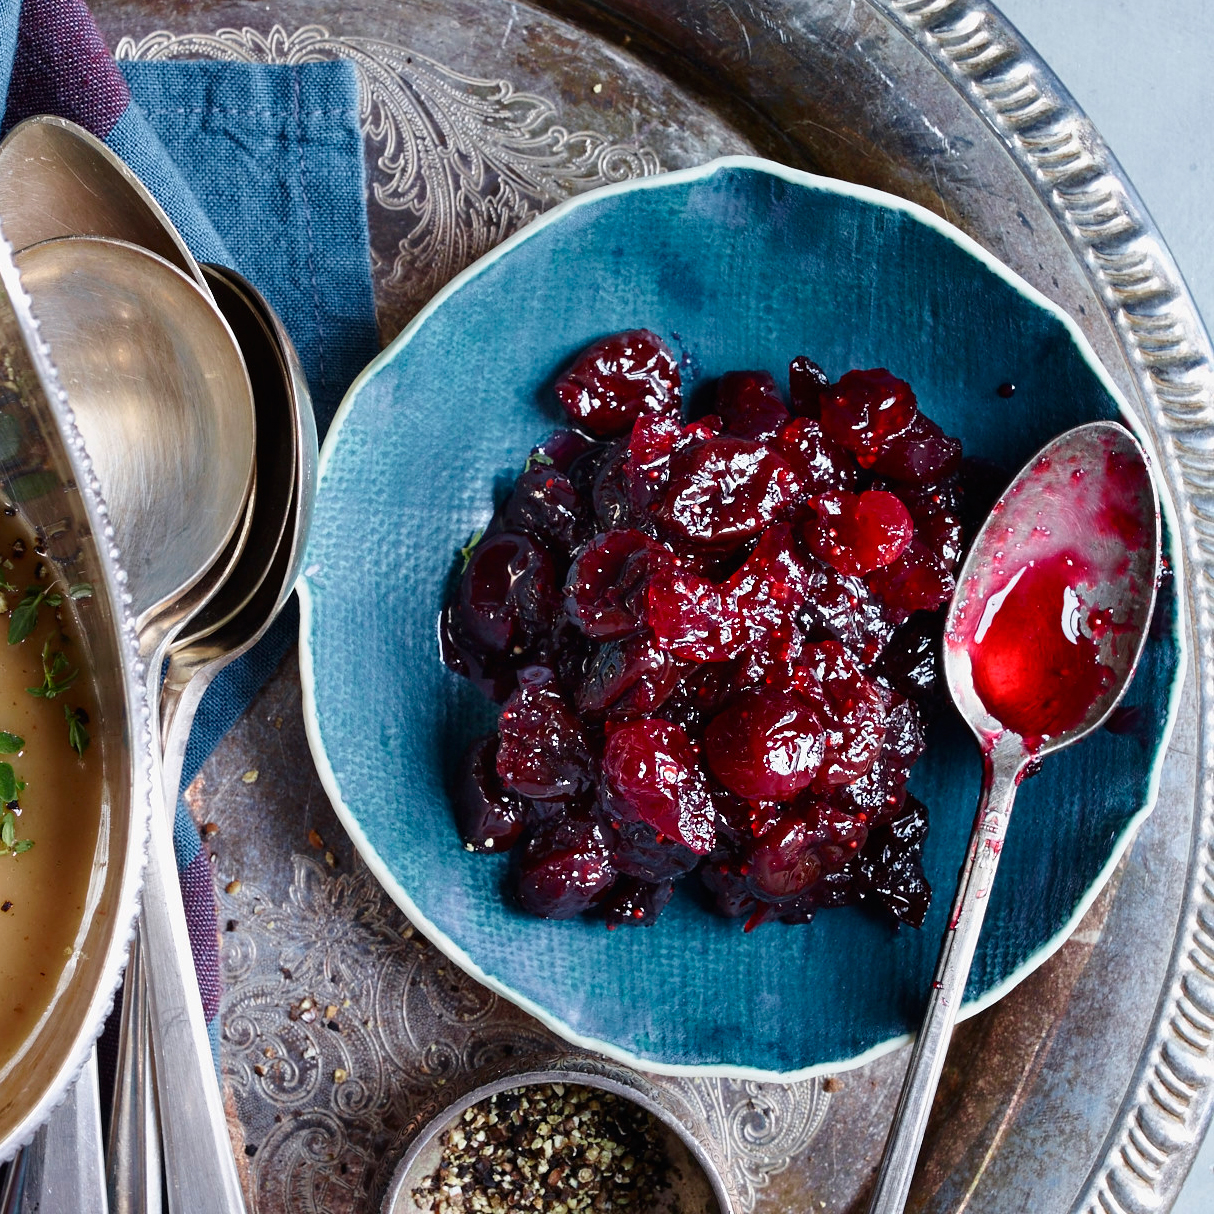 Cranberry Sauce with Dried Cherries